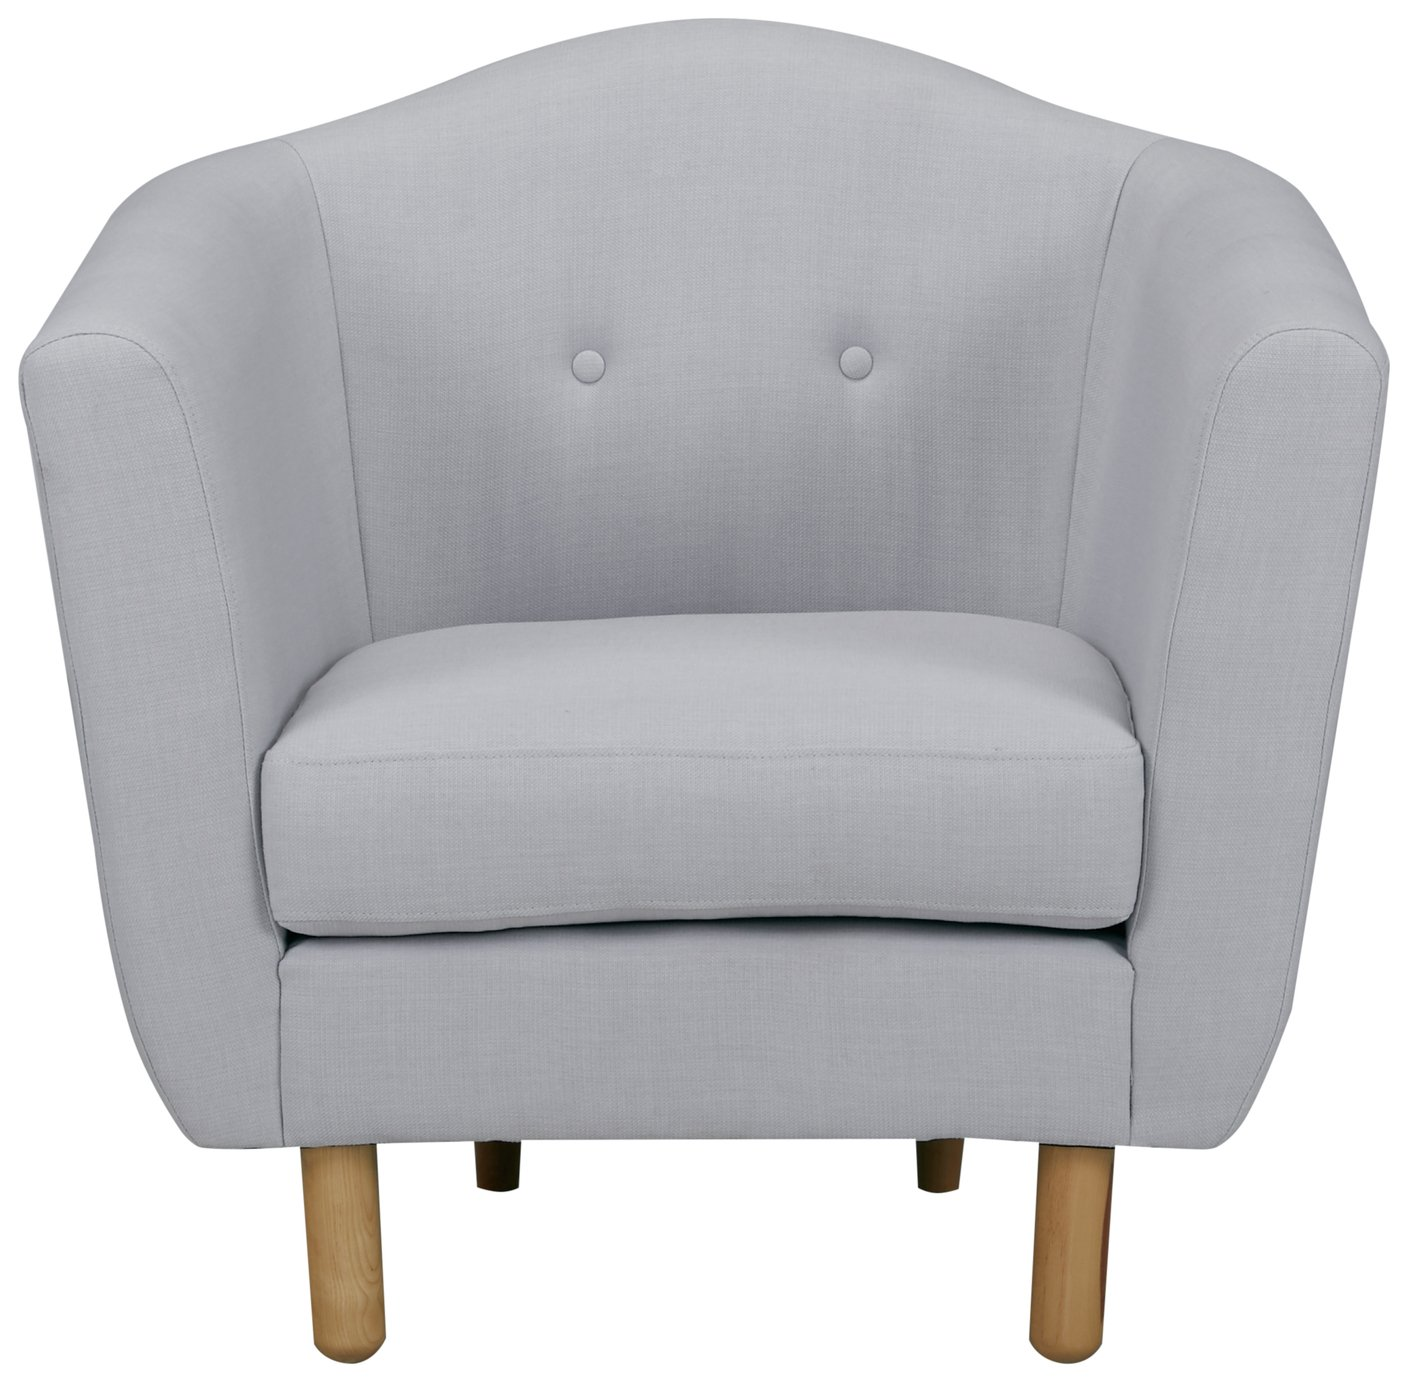 Argos Home Elin Fabric Armchair - Light Grey